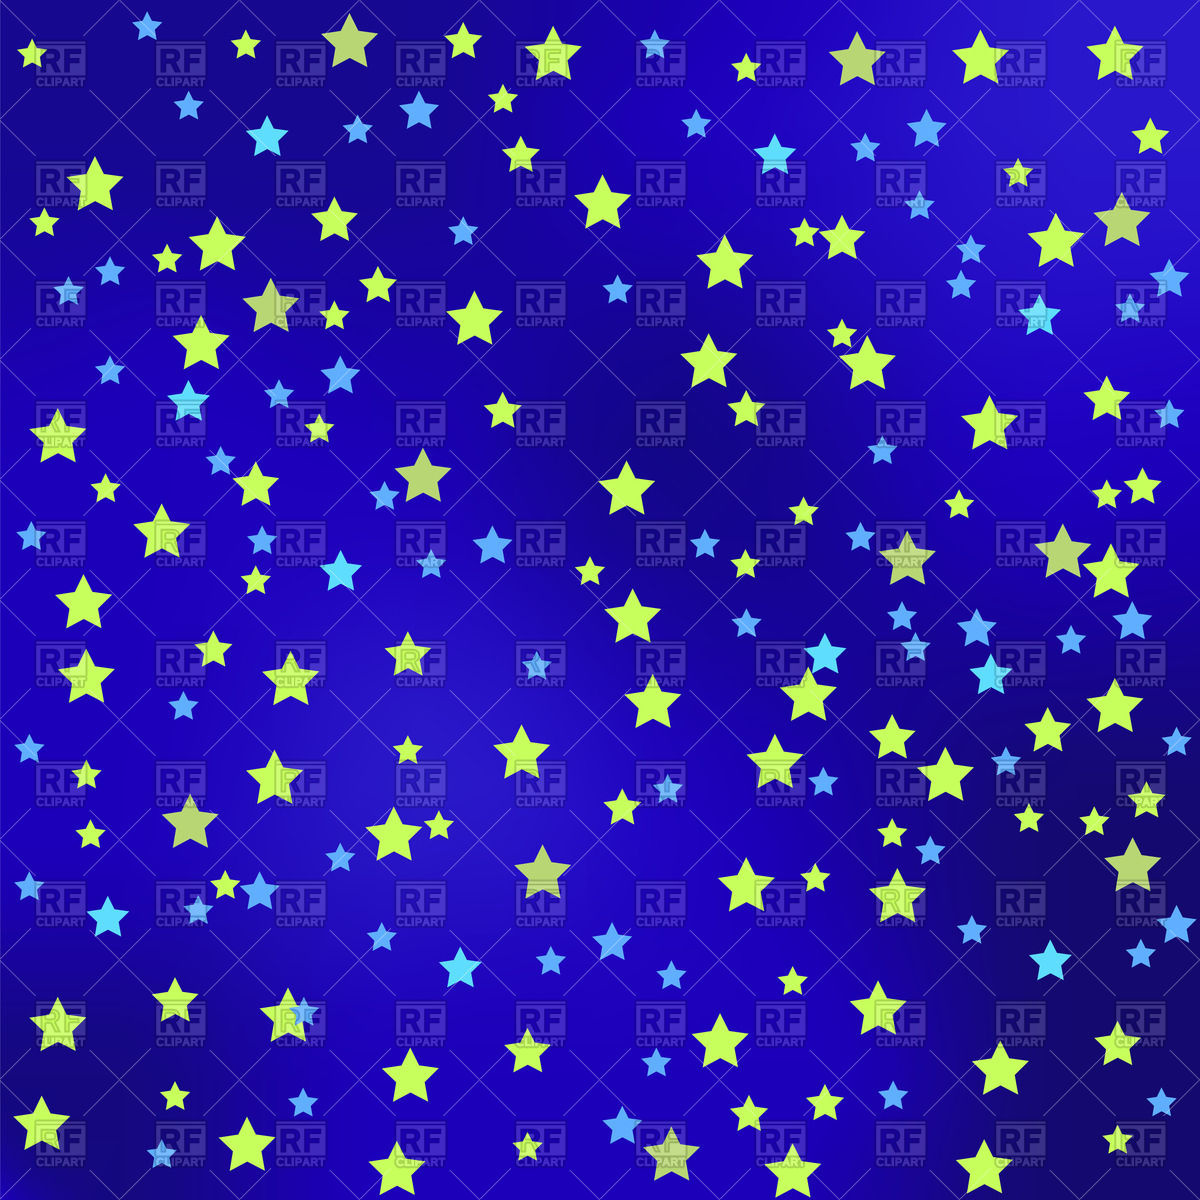 Background clipart starry night Clipart Starry night background clipart